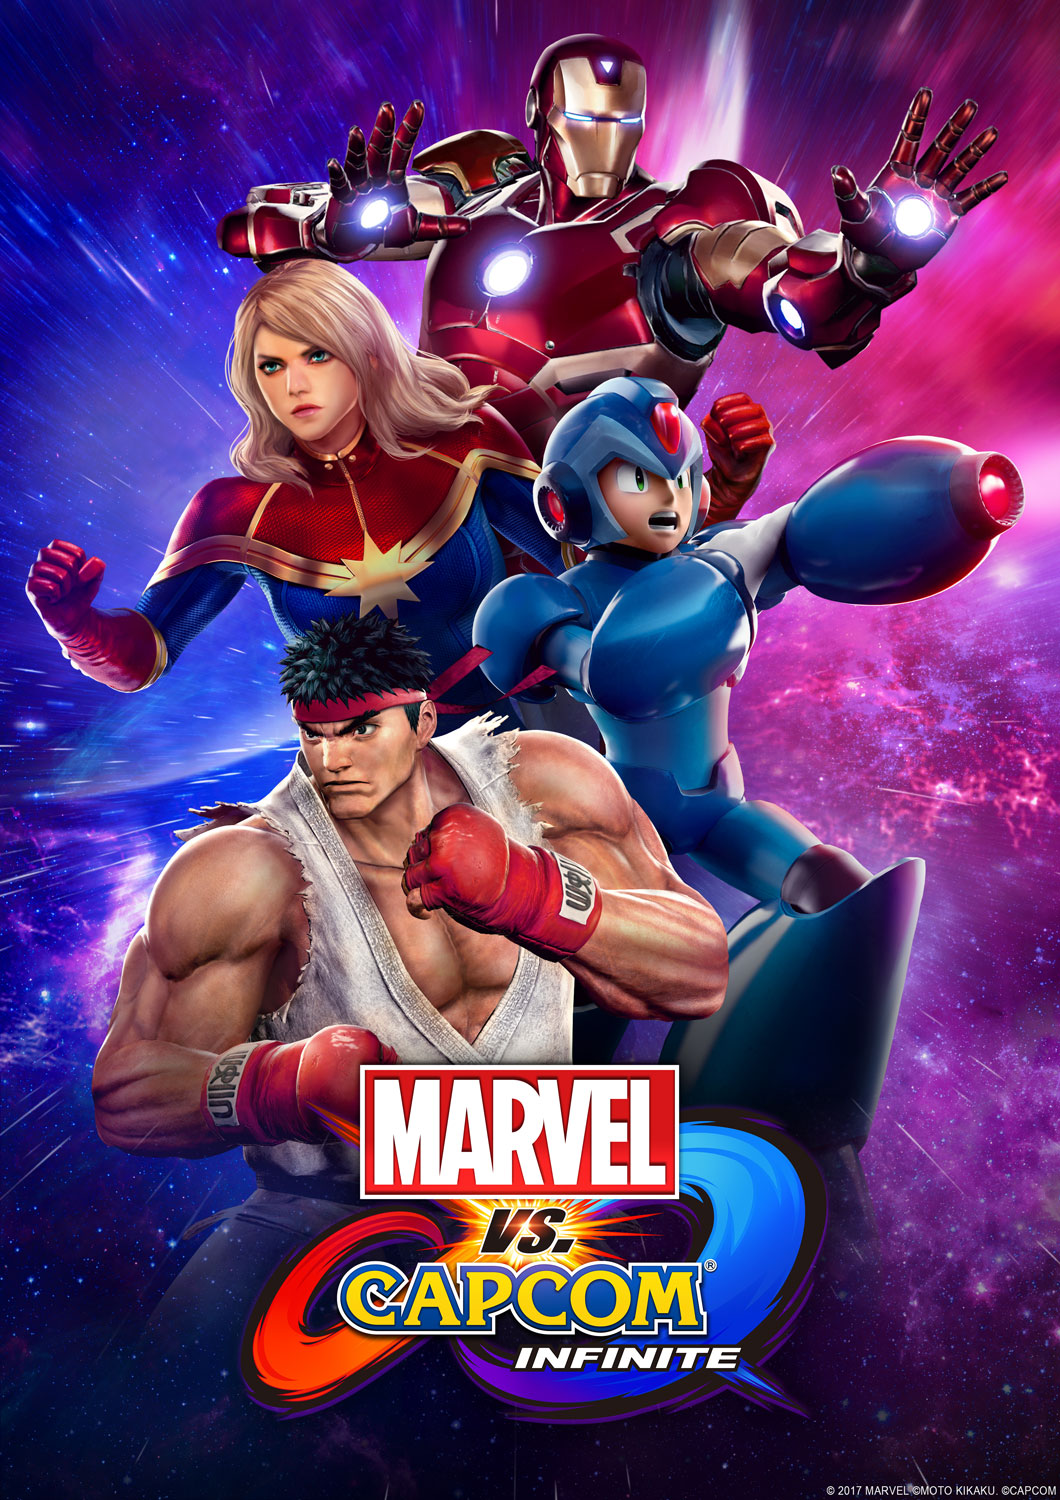 Marvel Vs. Capcom: Infinite Variant Covers Announced For August